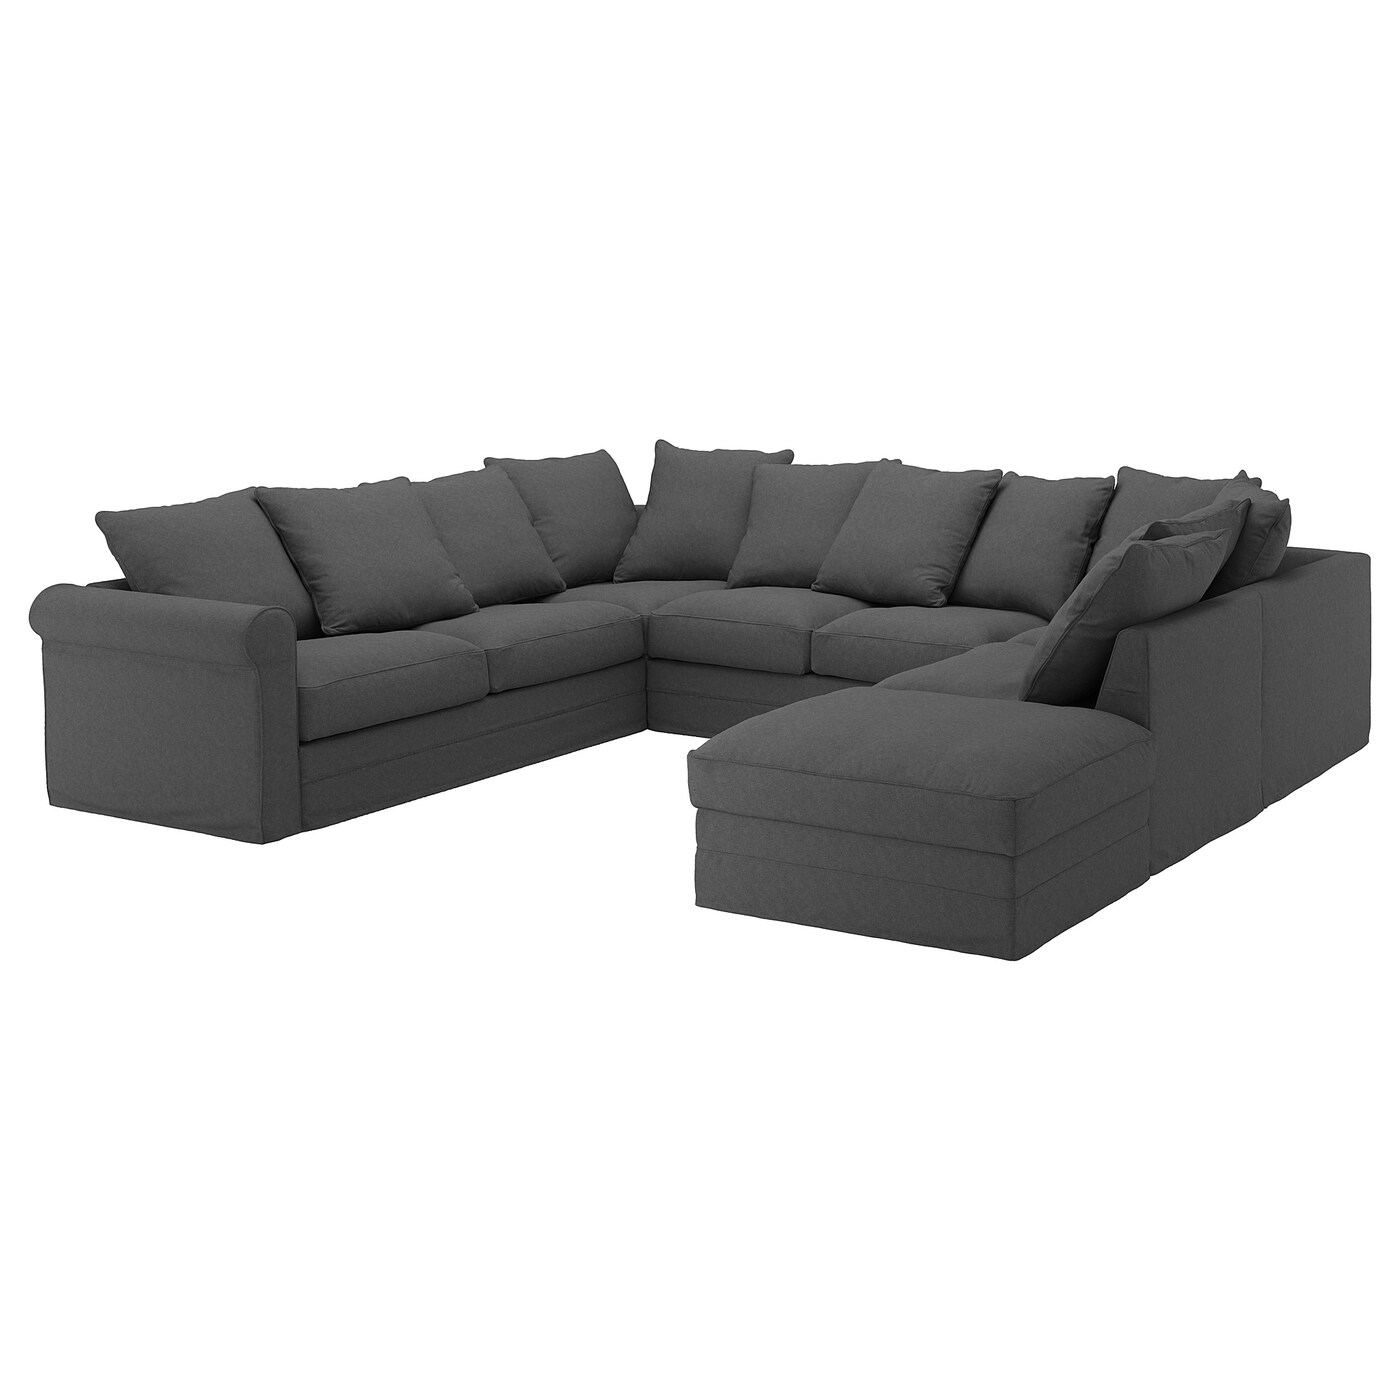 U Couch GrÖnlid U-shaped Sofa, 6 Seat - With Open End, Tallmyra ...